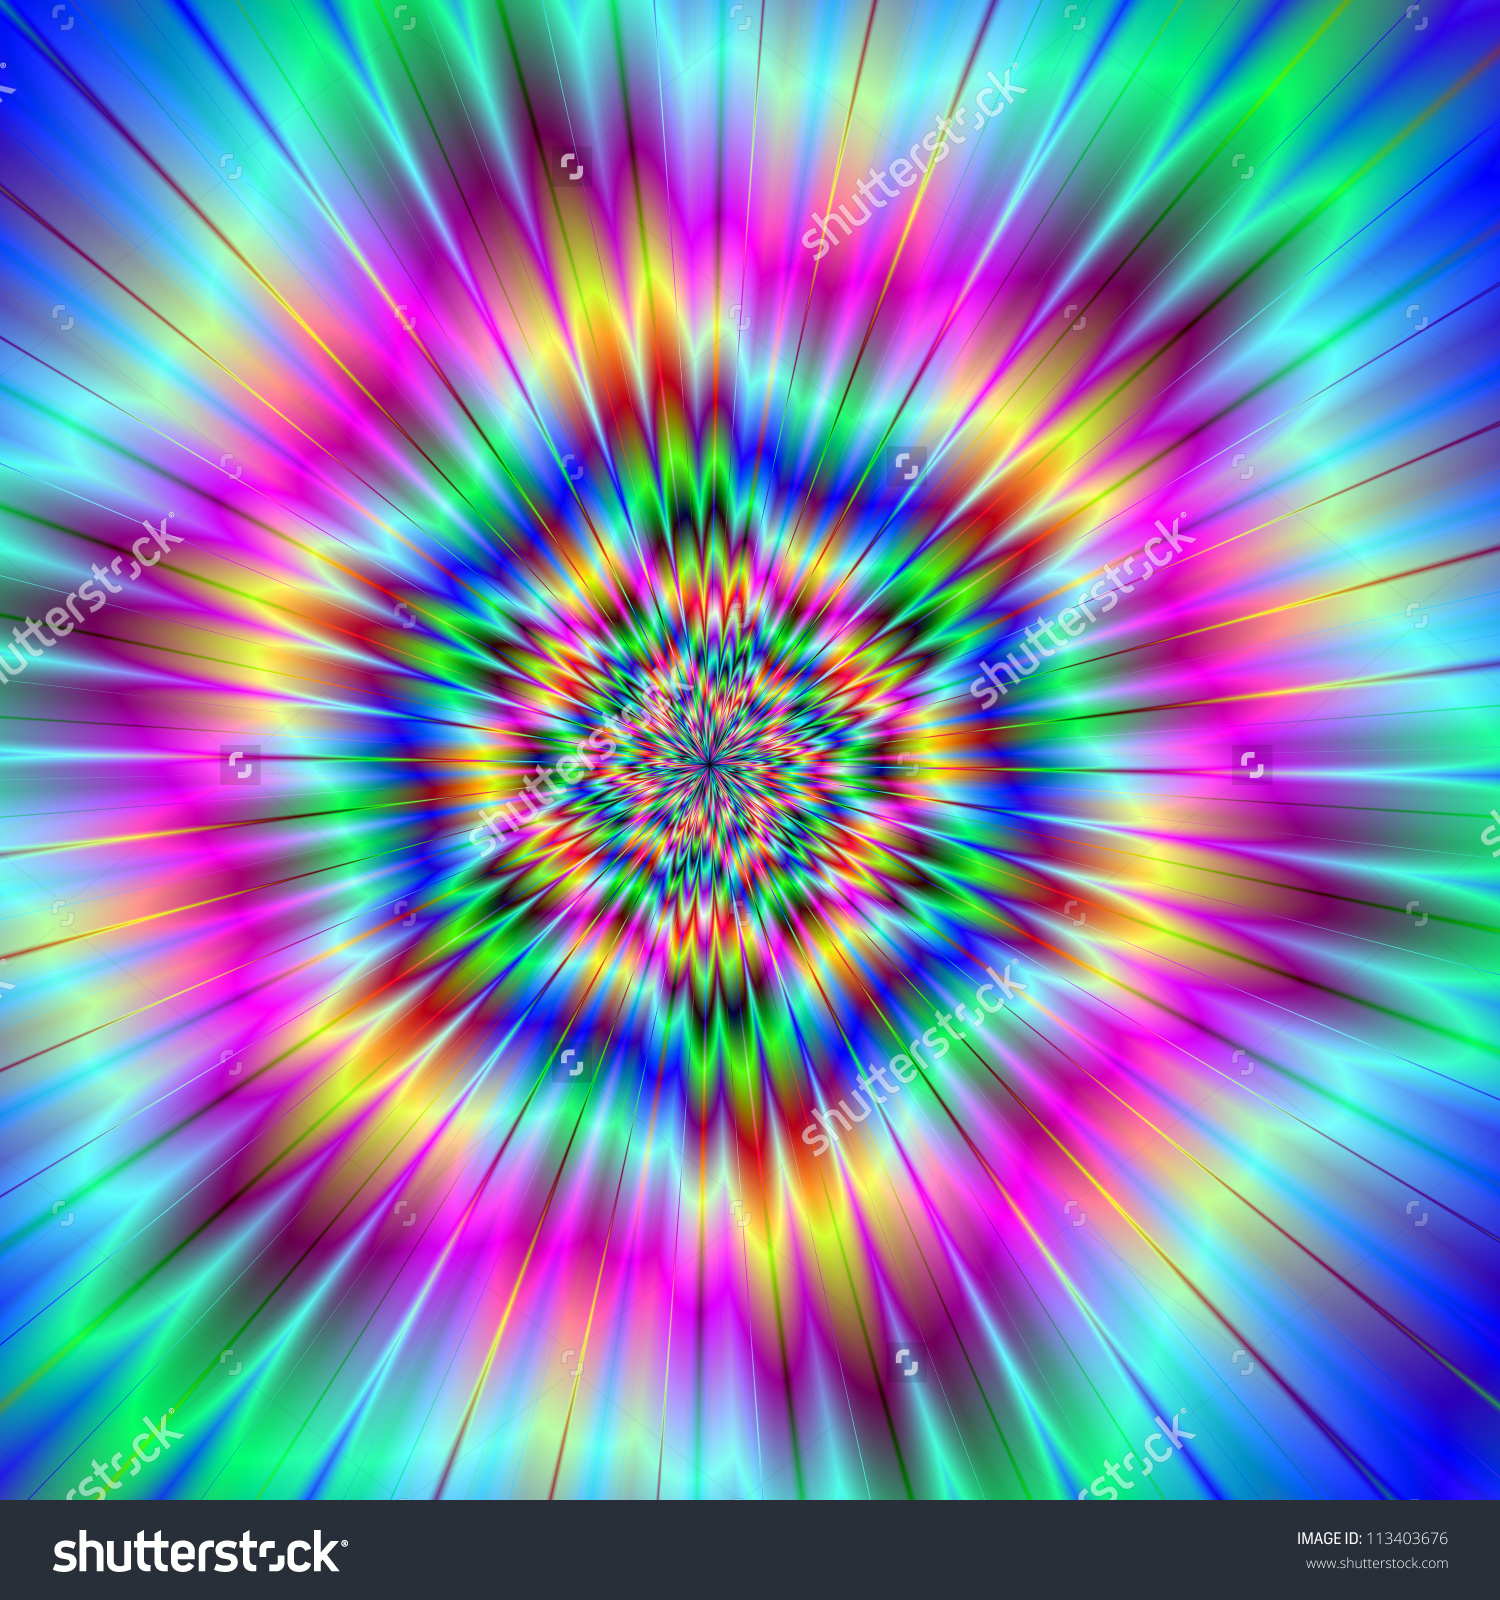 Explosion Of Colors Clipart Clipground